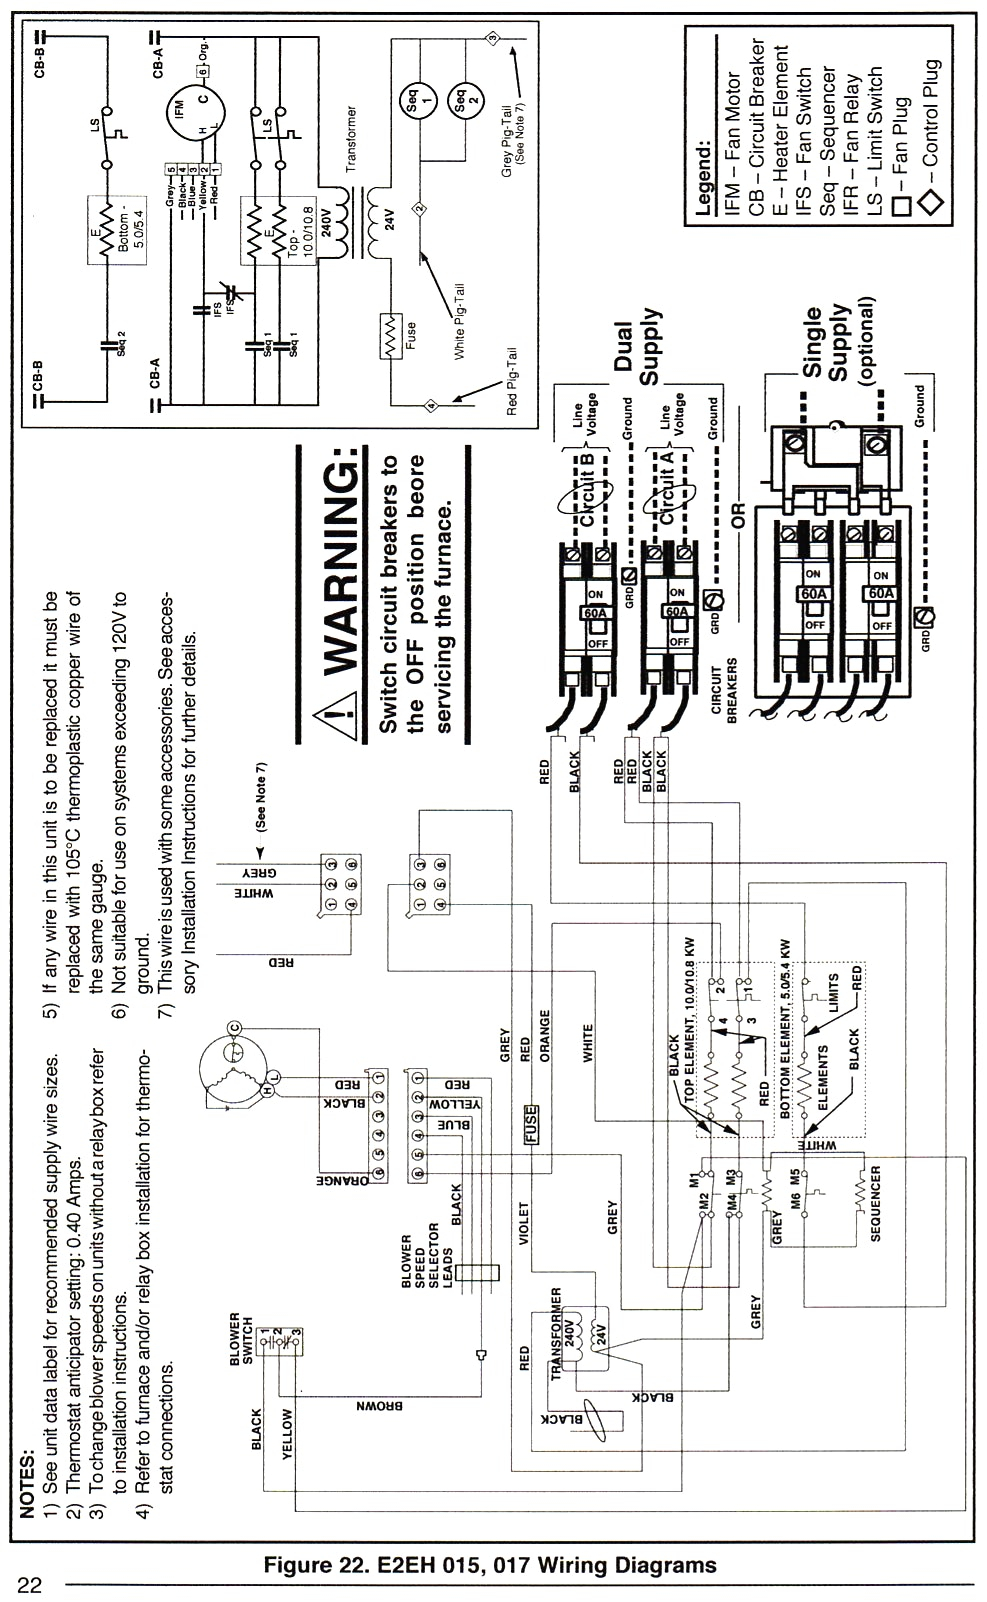 tappan heat pump wiring diagram simple wiring diagram rh 5 8 10 datschmeckt de